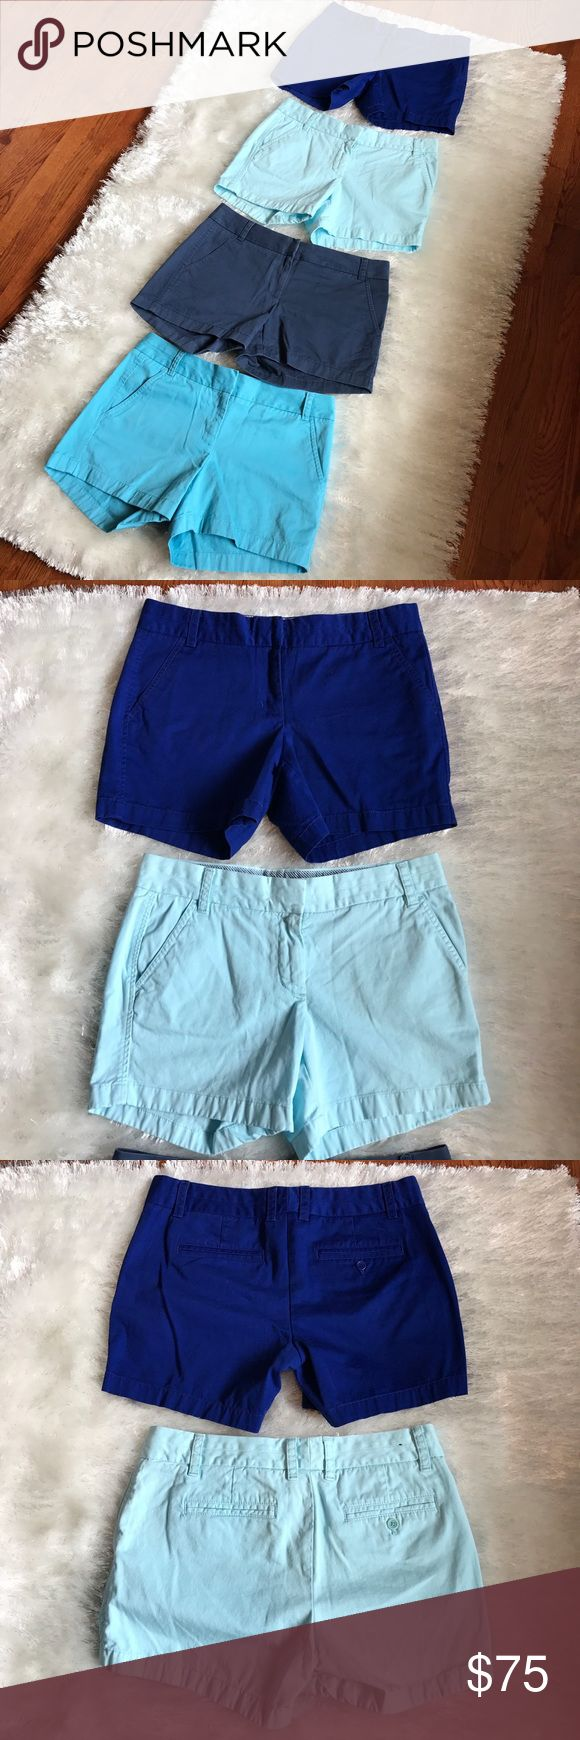 J. CREW Size 6 Bundle of Shorts J. Crew Chino Bundle. 4 pairs, size 6. Each pair is originally priced at $40, so this is an amazing deal for four pairs, lightly worn and loved. All different blues - navy, sky, royal, and light. J. Crew Shorts